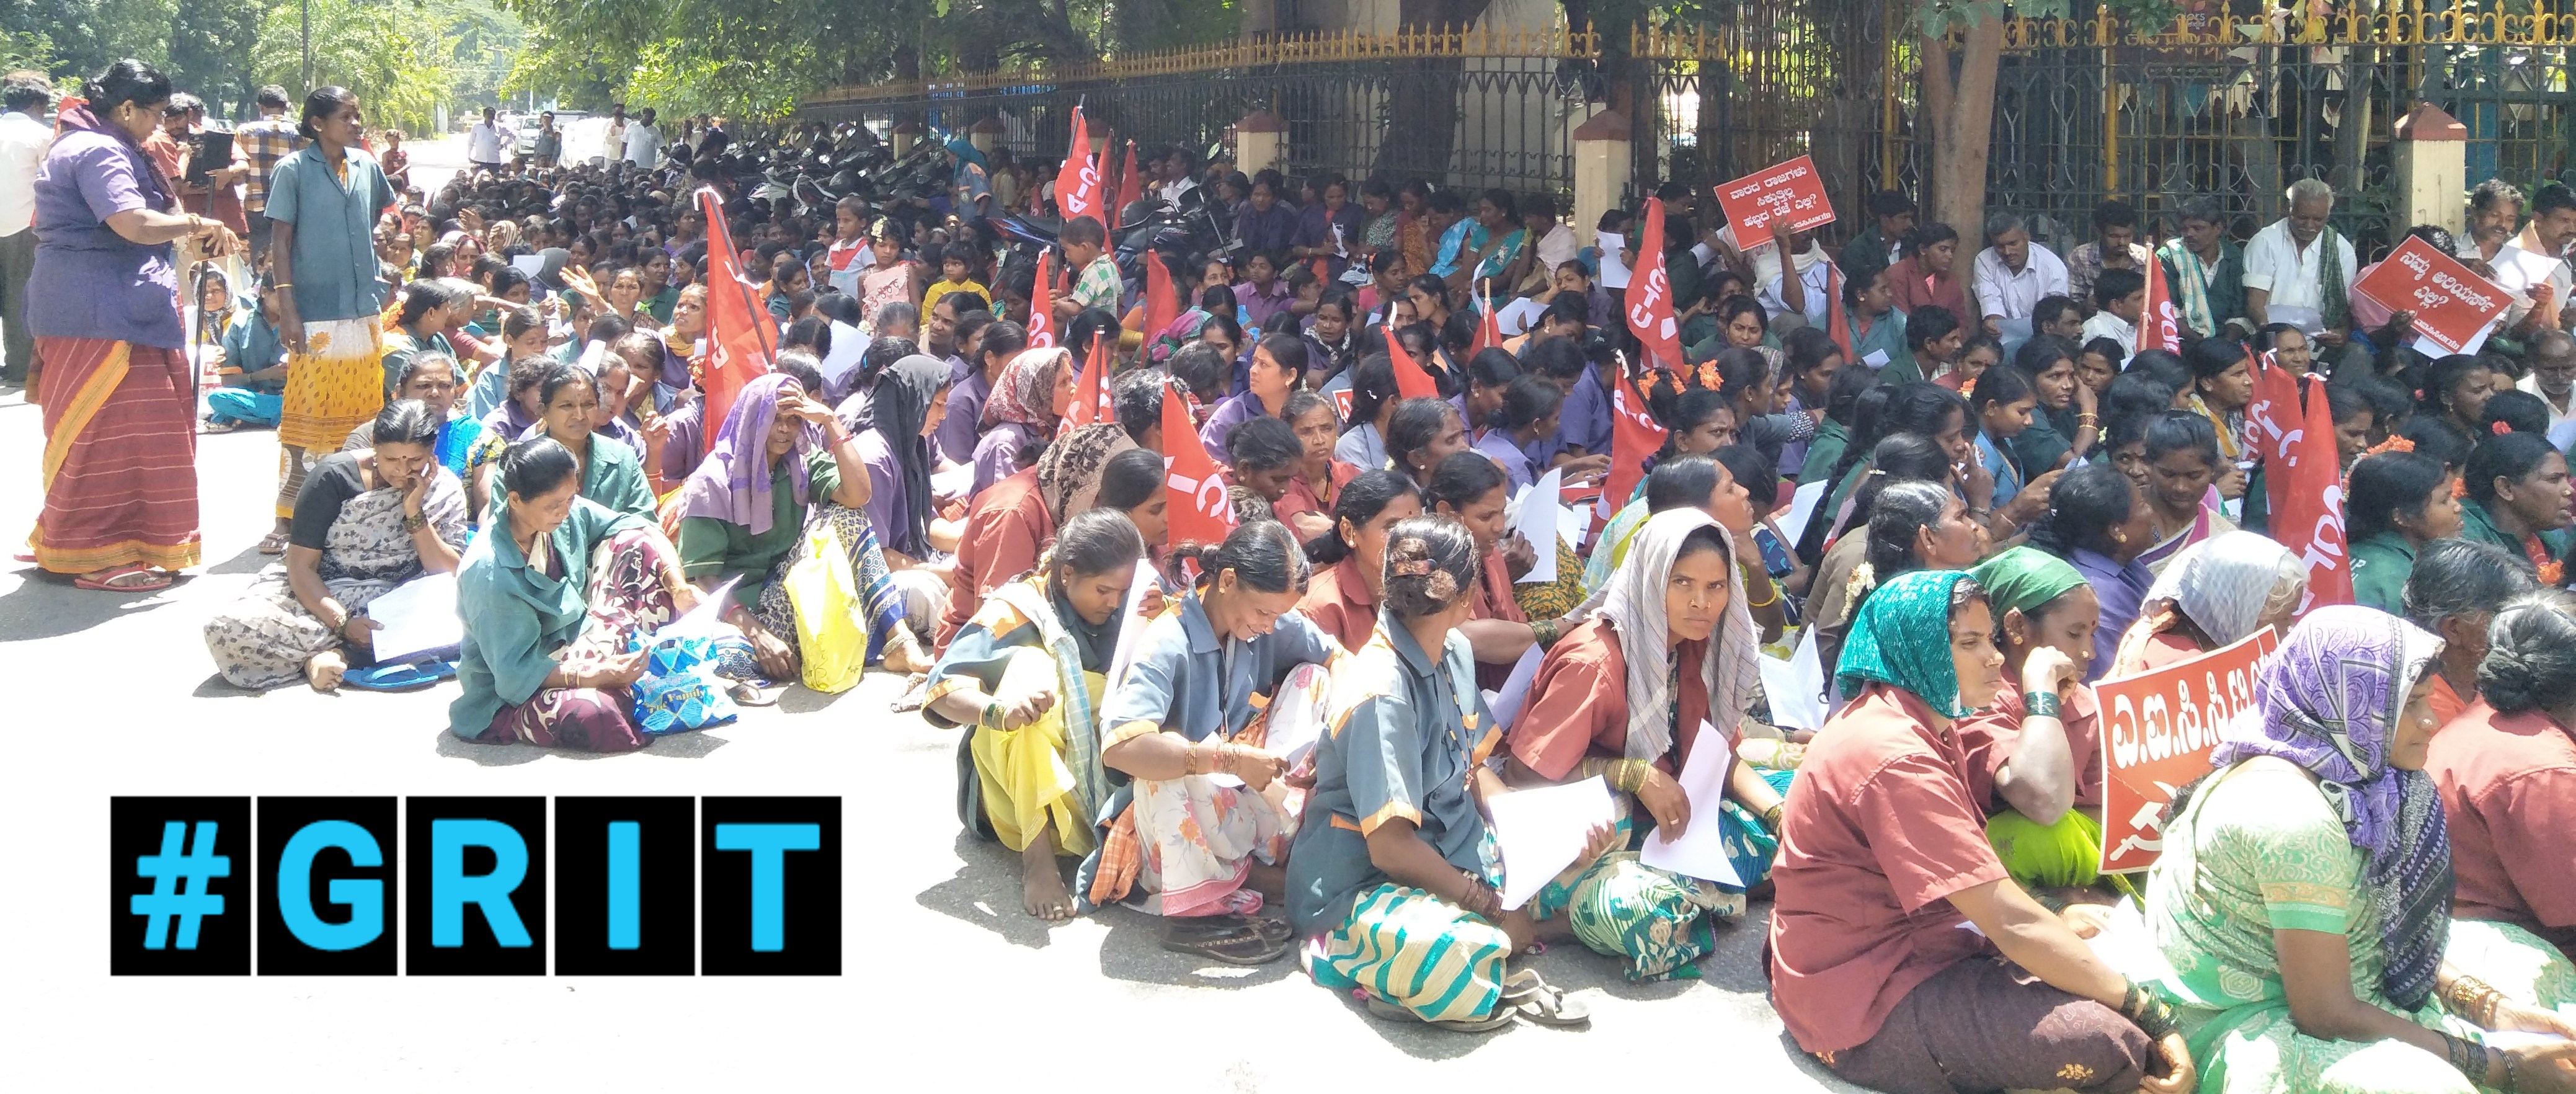 Denied Wages and Dignity, Sanitation Workers in Bangalore Protest